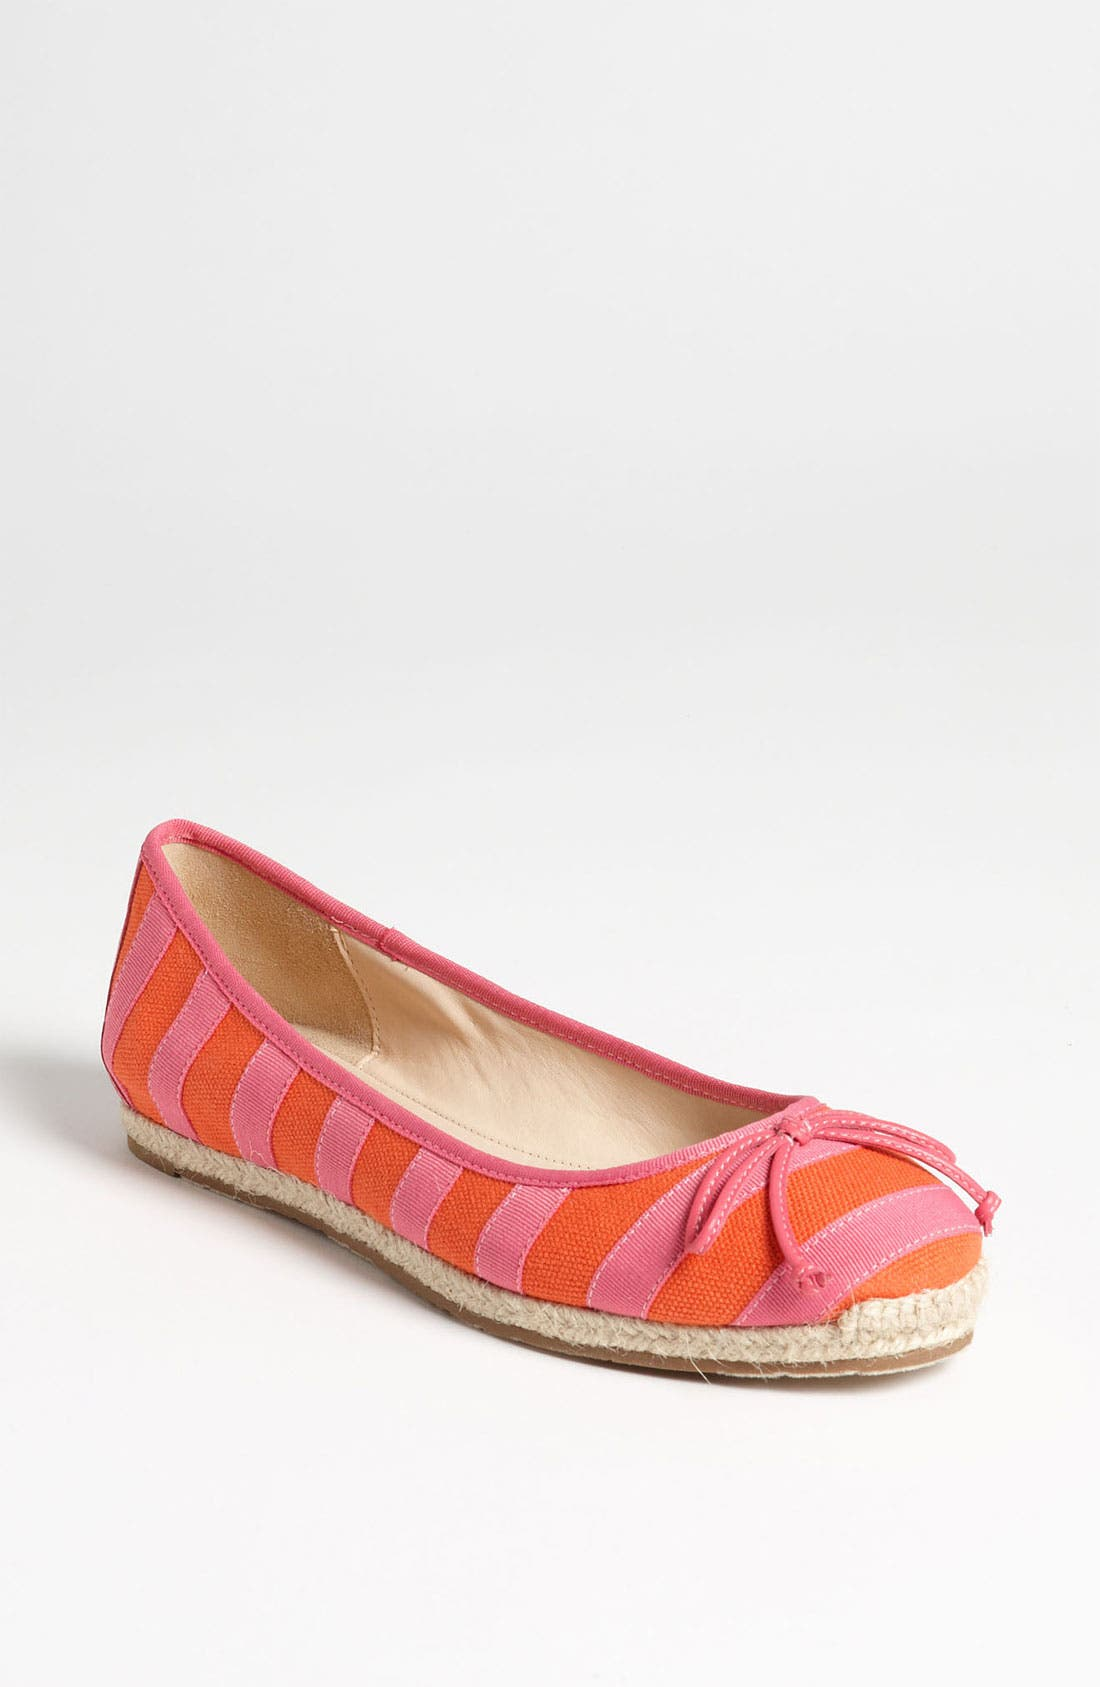 Main Image - kate spade new york 'valley' flat